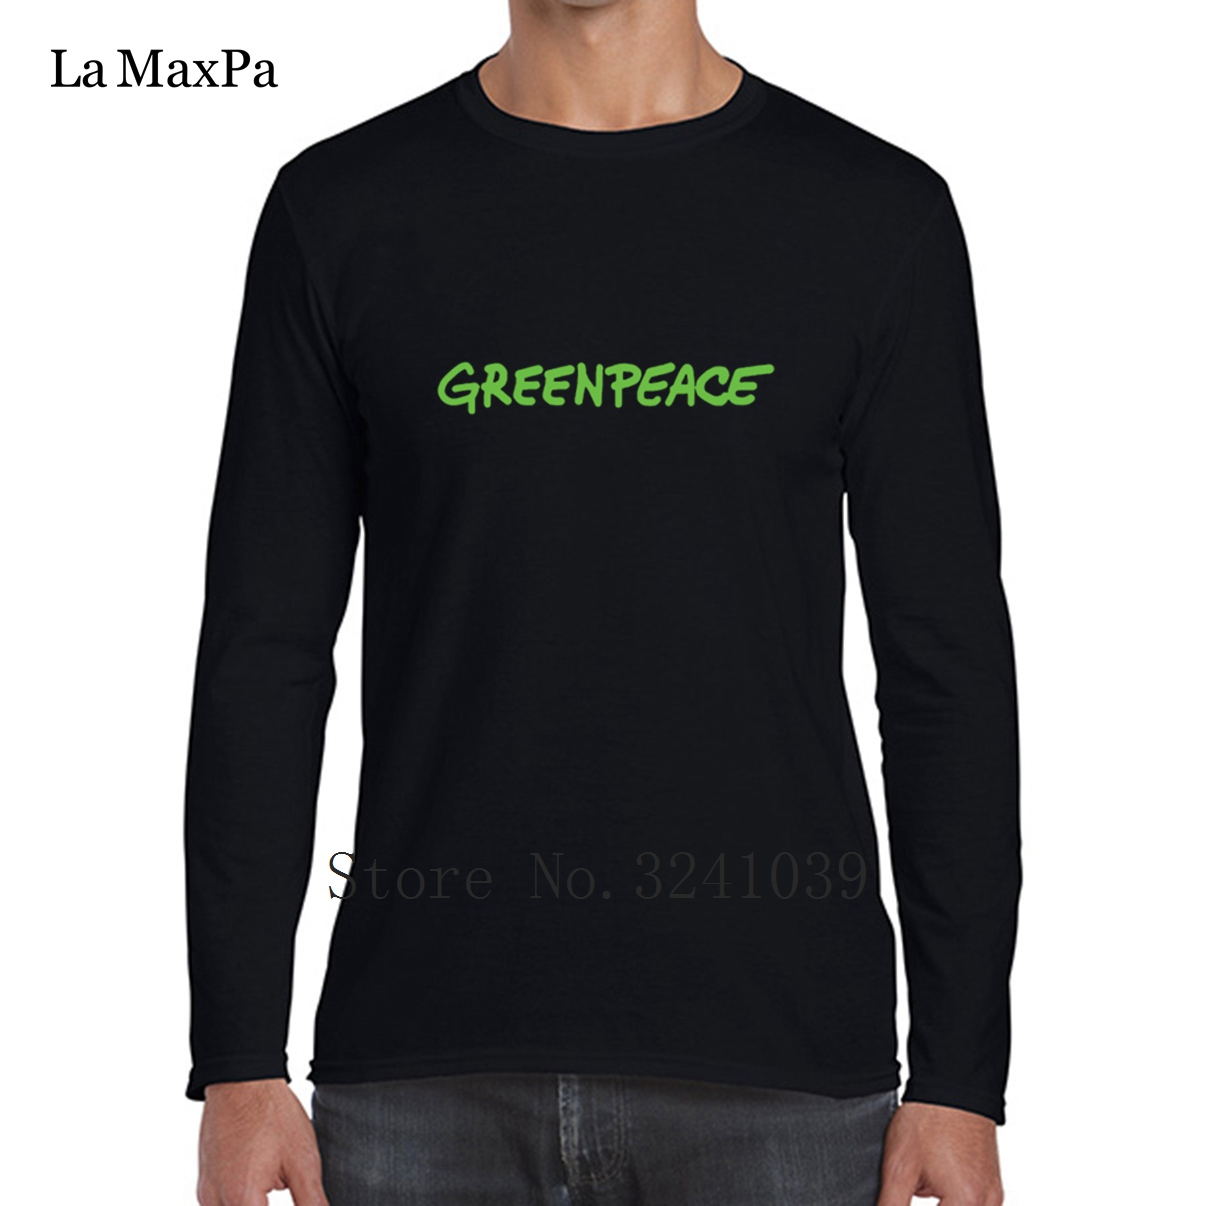 Us 17 42 12 Off La Maxpa Make Your Own Custom Greenpeace Novelty Men Tee Shirt 2018 Regular T Clothes Round Collar Tshirt Large In Shirts